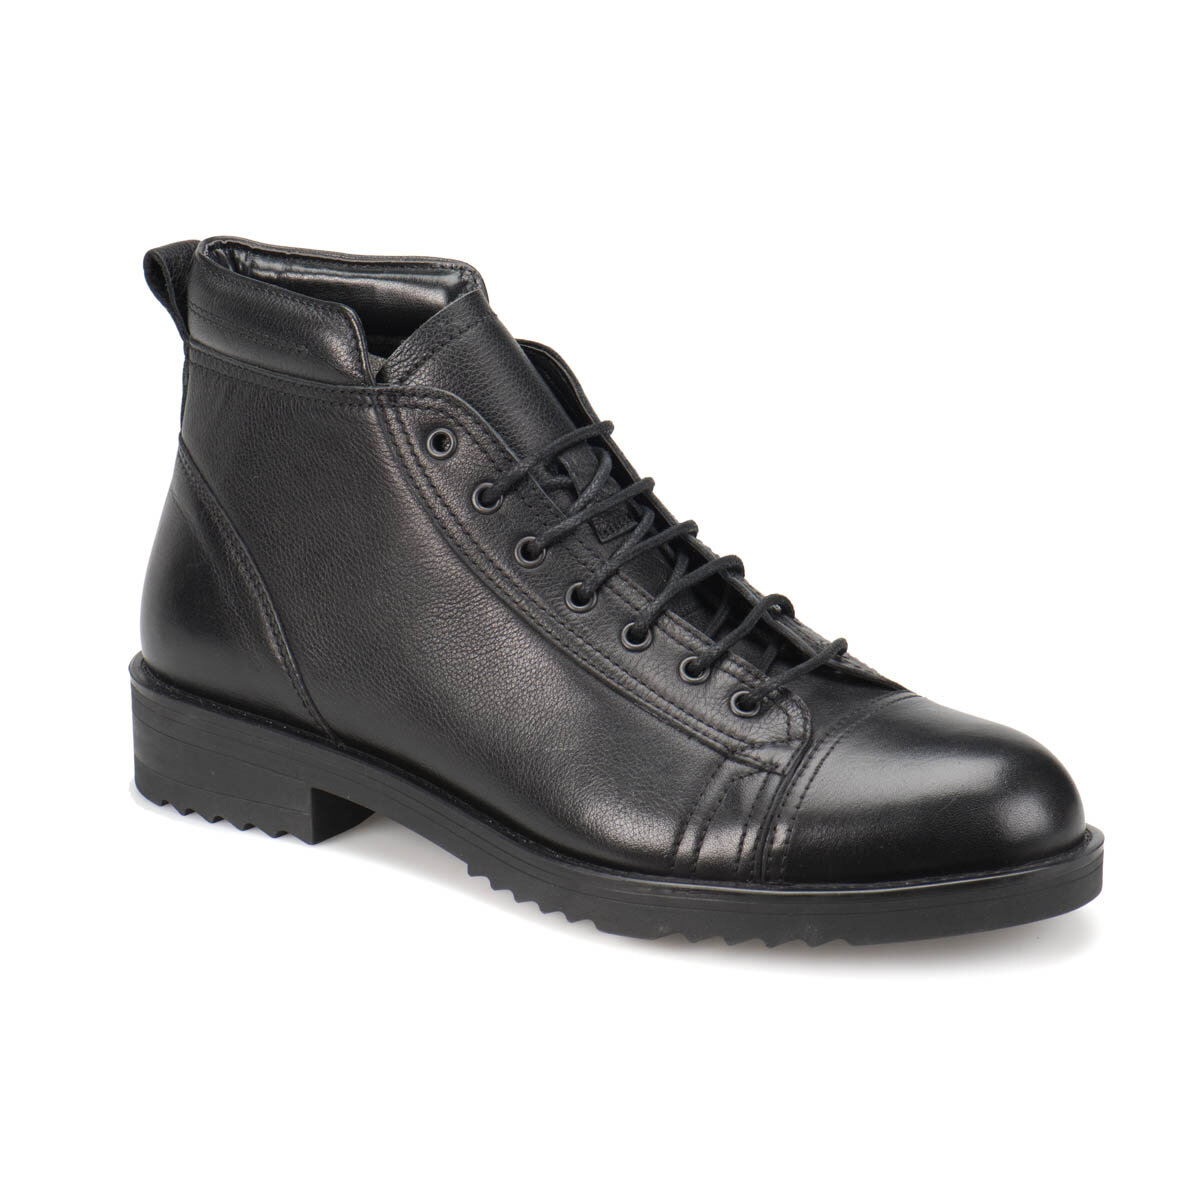 FLO 4752 Black Men Boots Oxide